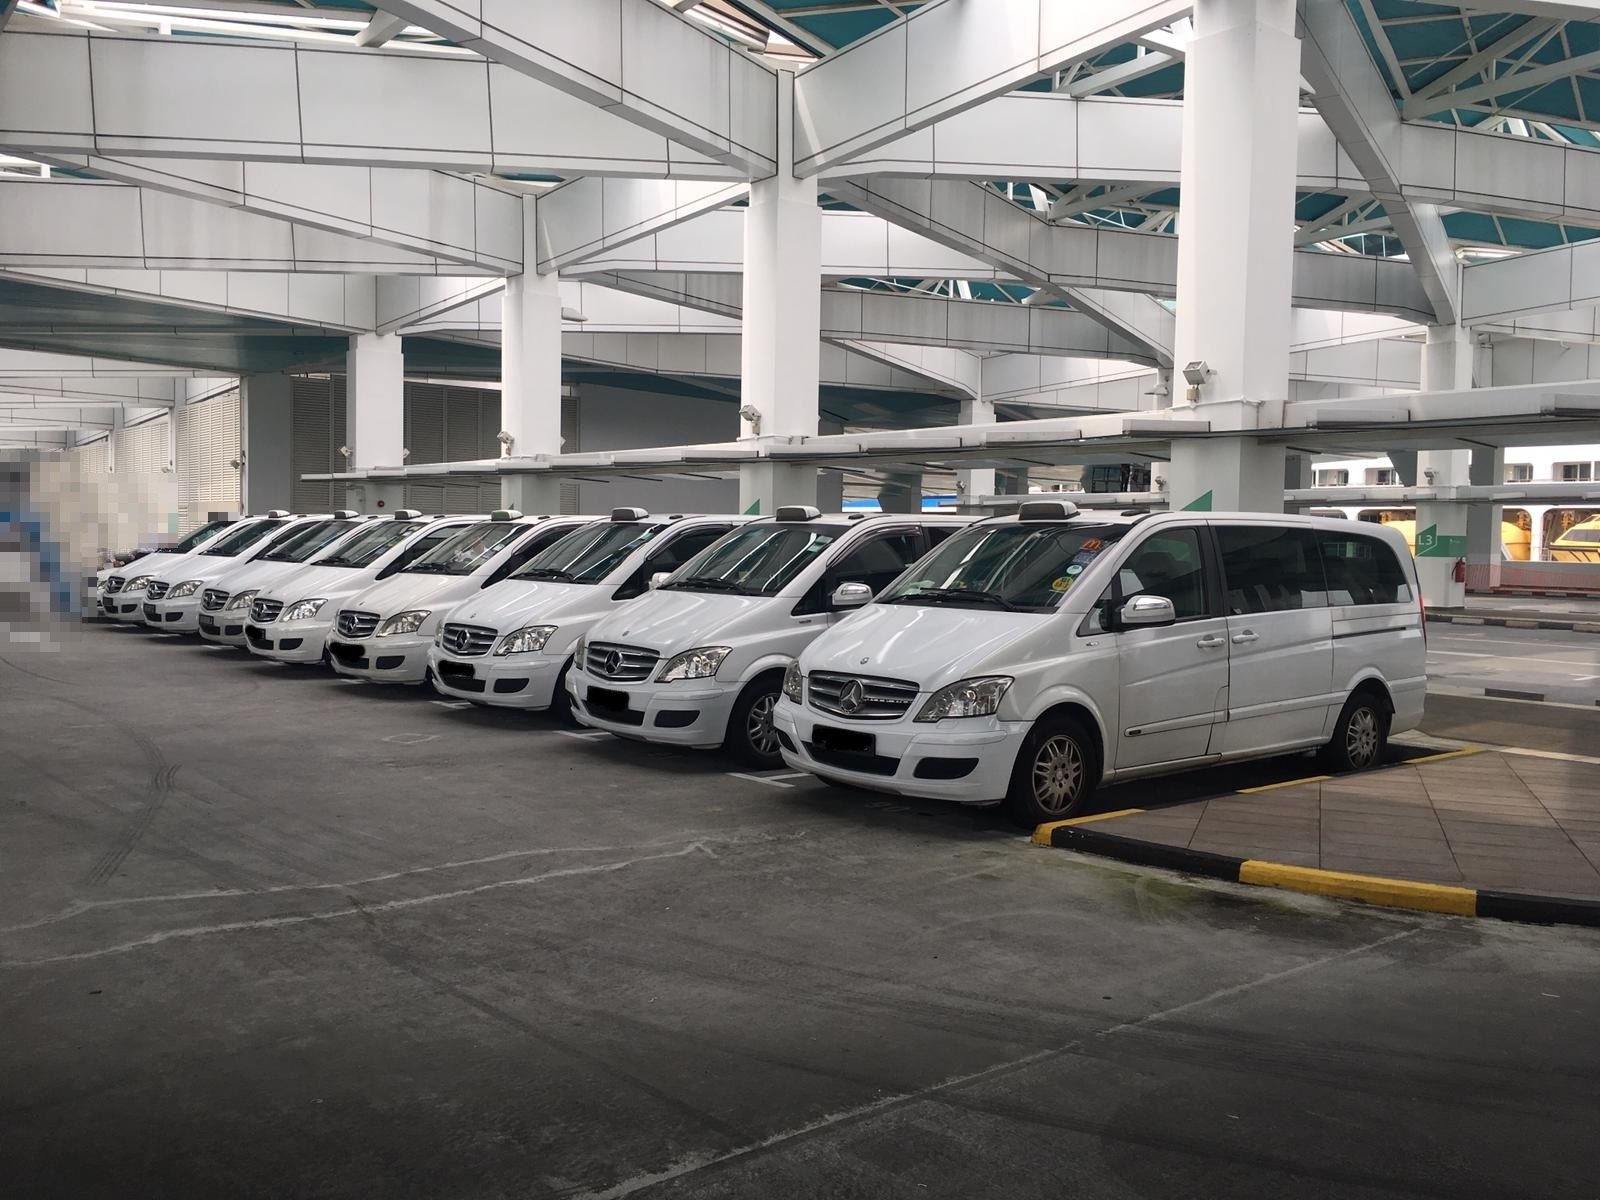 cheapest 7 Seater taxi in Singapore